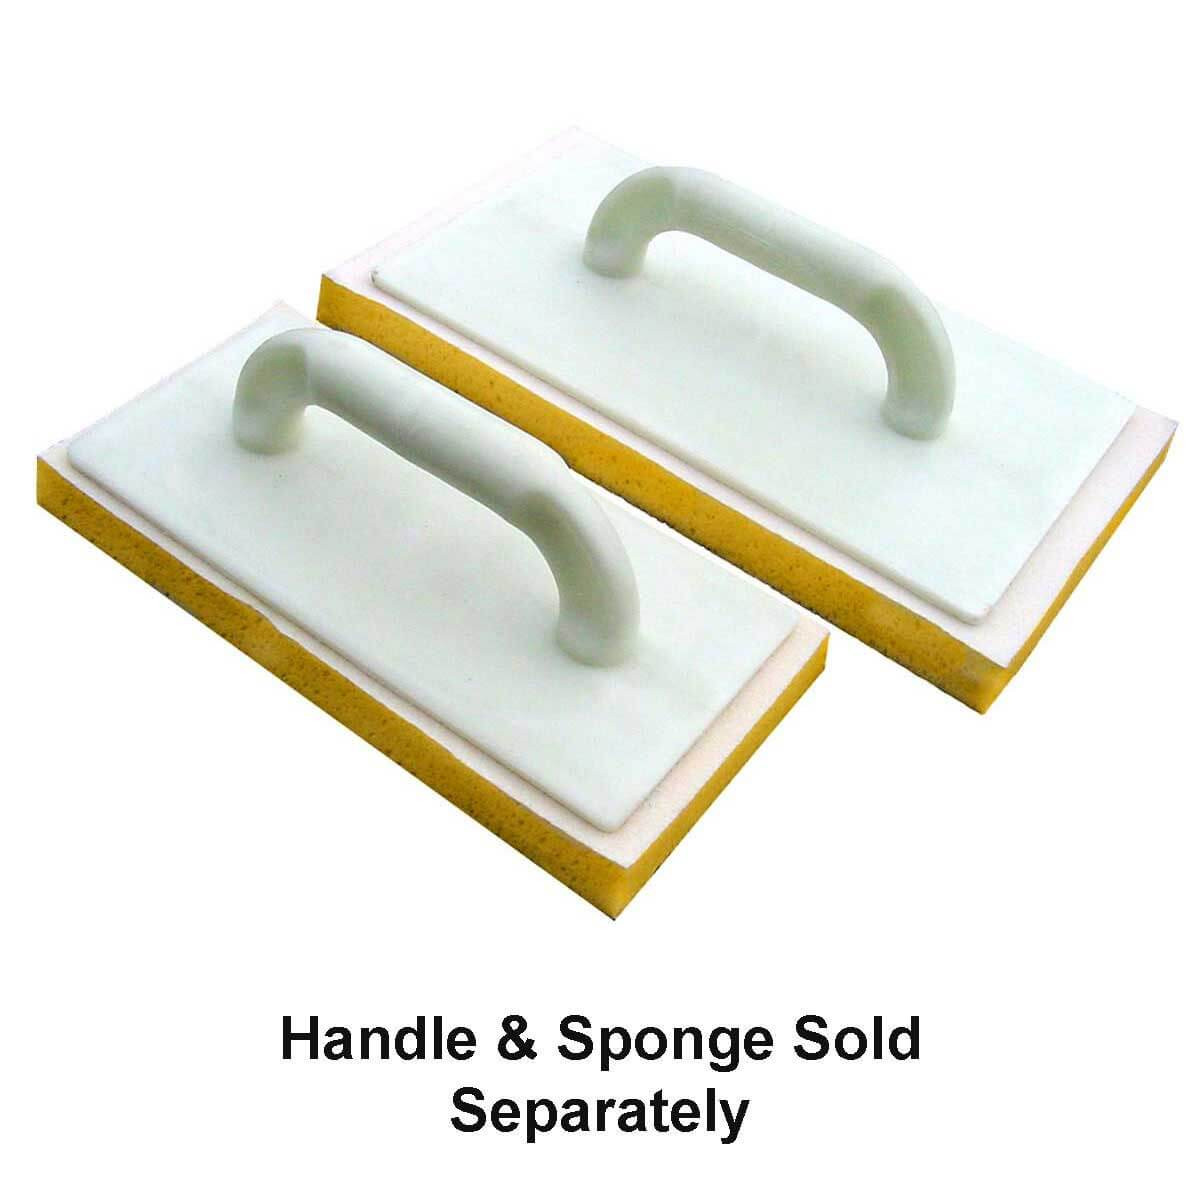 Grout Caddy standard Sponges